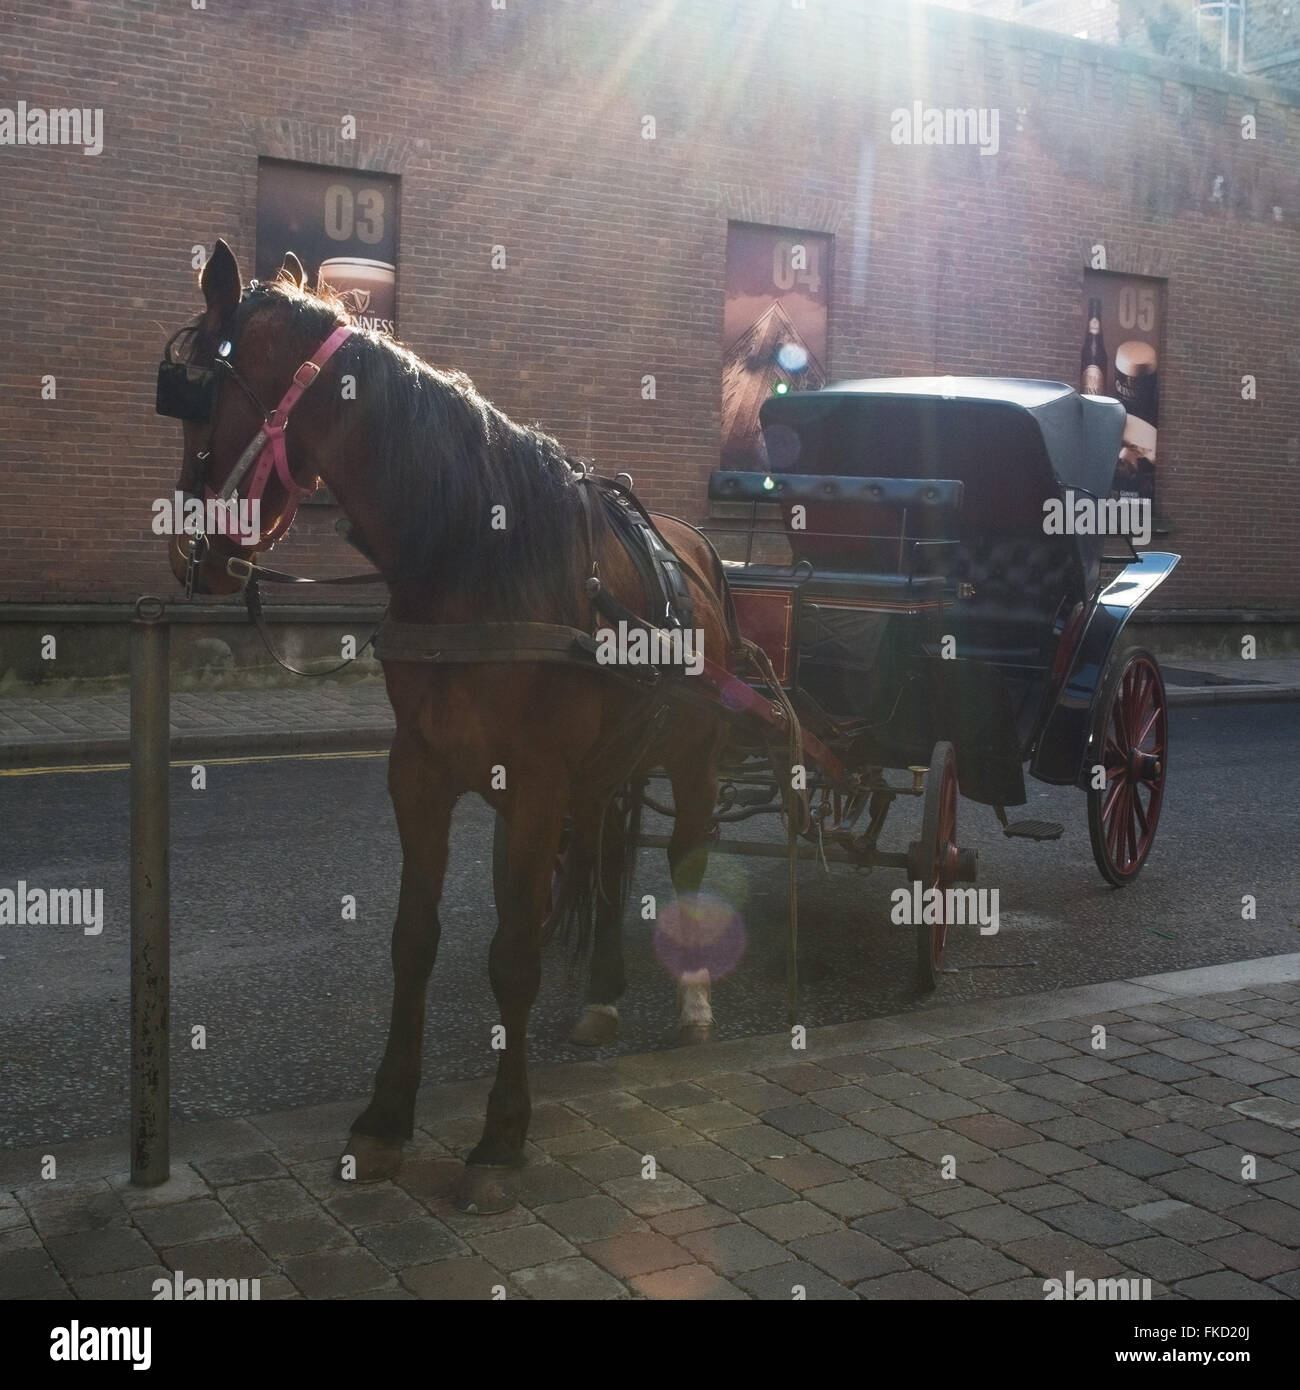 Horse drawn carriage waiting for tourists outside the Guinness Storehouse, Dublin, Ireland - Stock Image